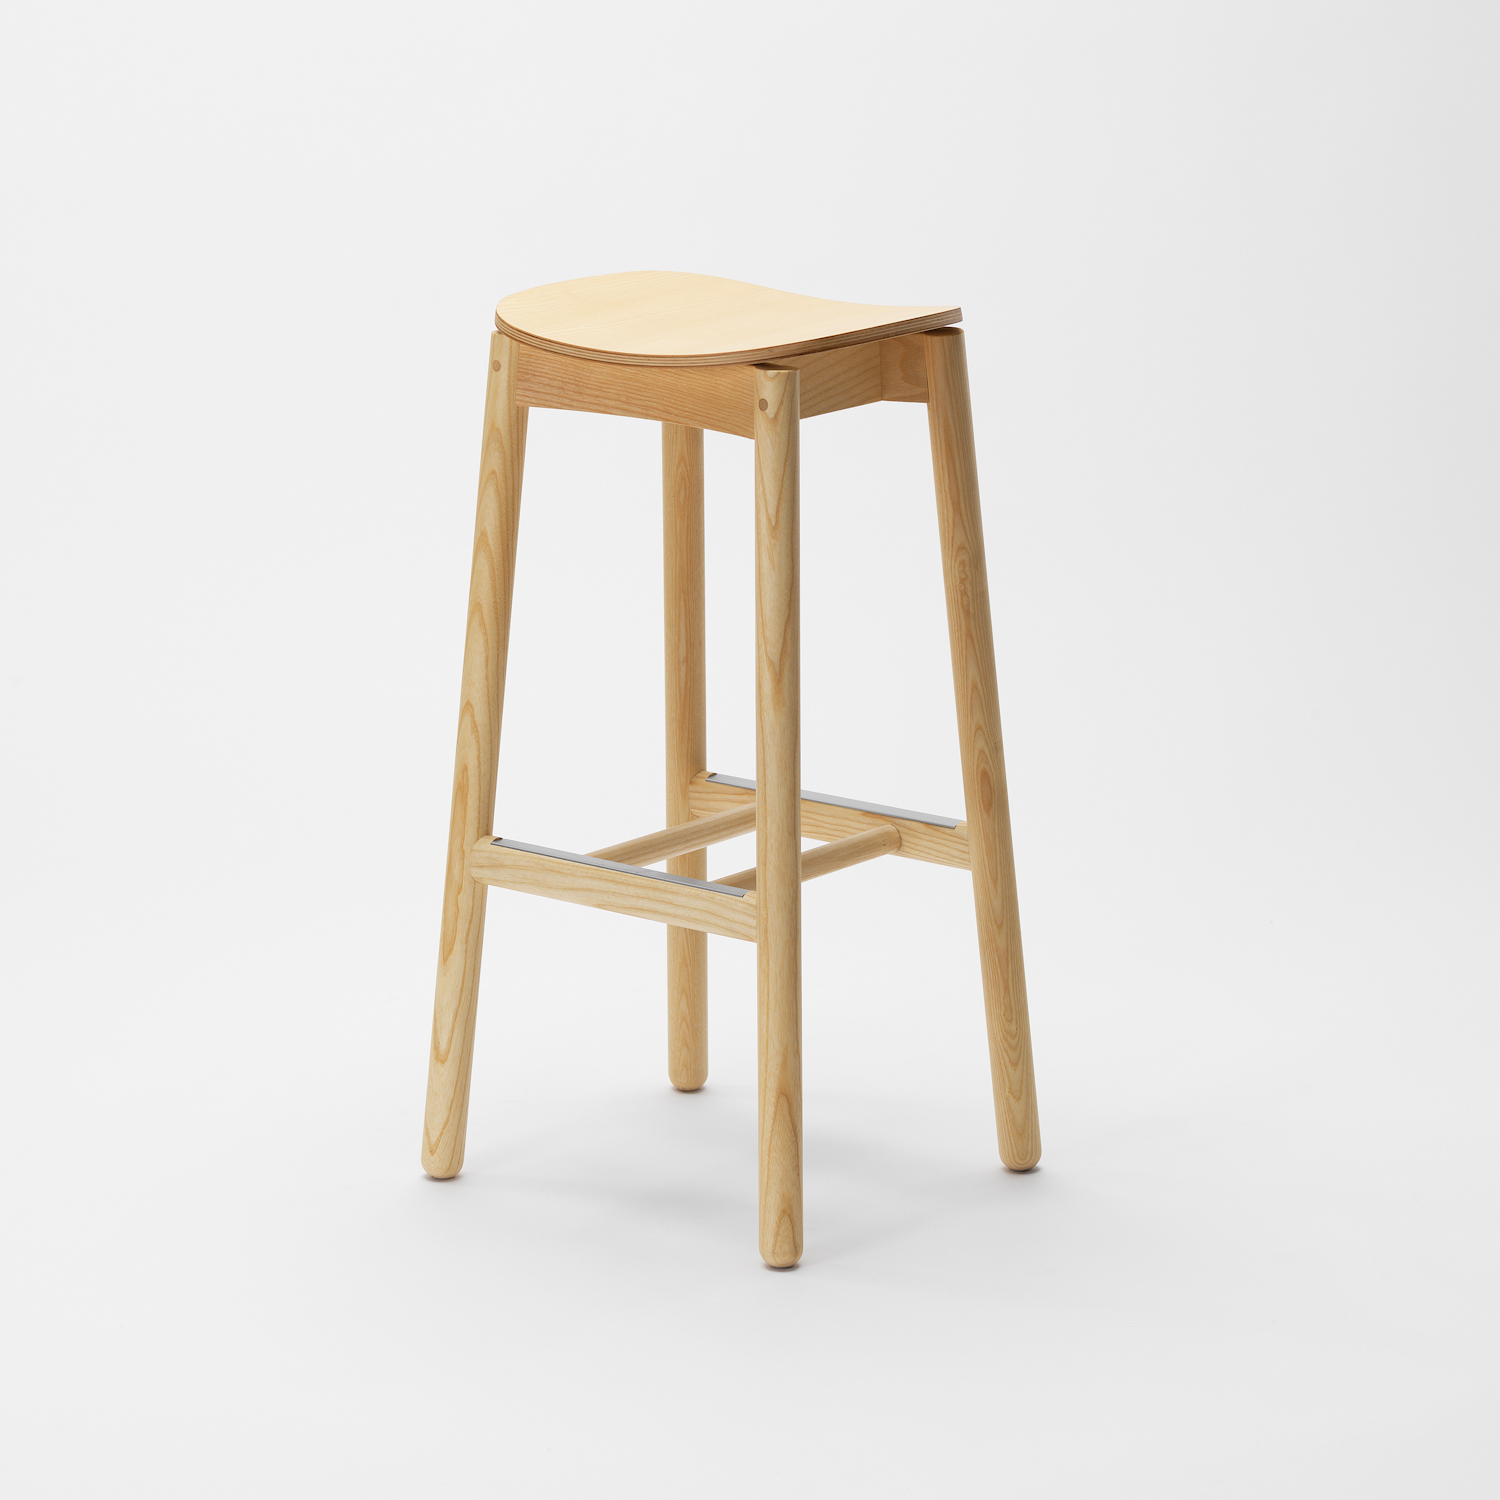 Nico_lounge stool_no backrest (4 of 4)